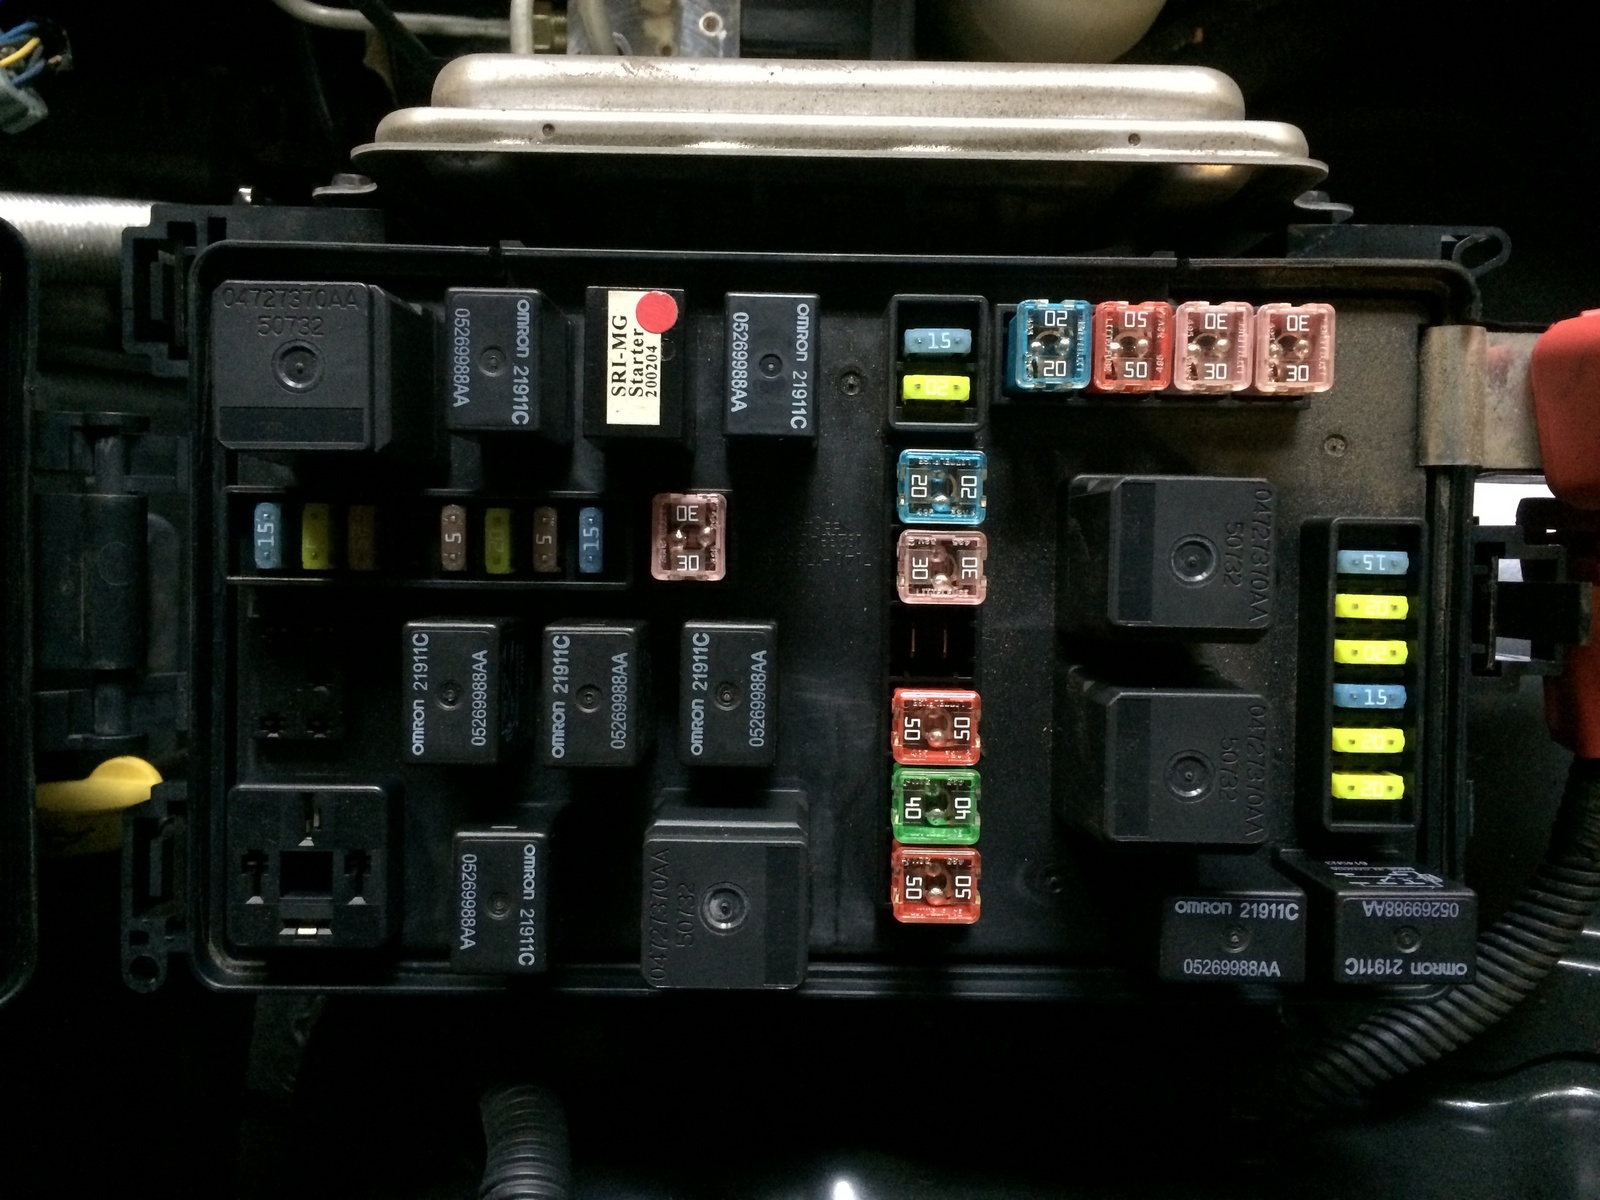 2008 Toyota Tundra Fuse Box Wiring Library 2007 Diagram Sienna Dodge Charger Questions Will Not Start Please